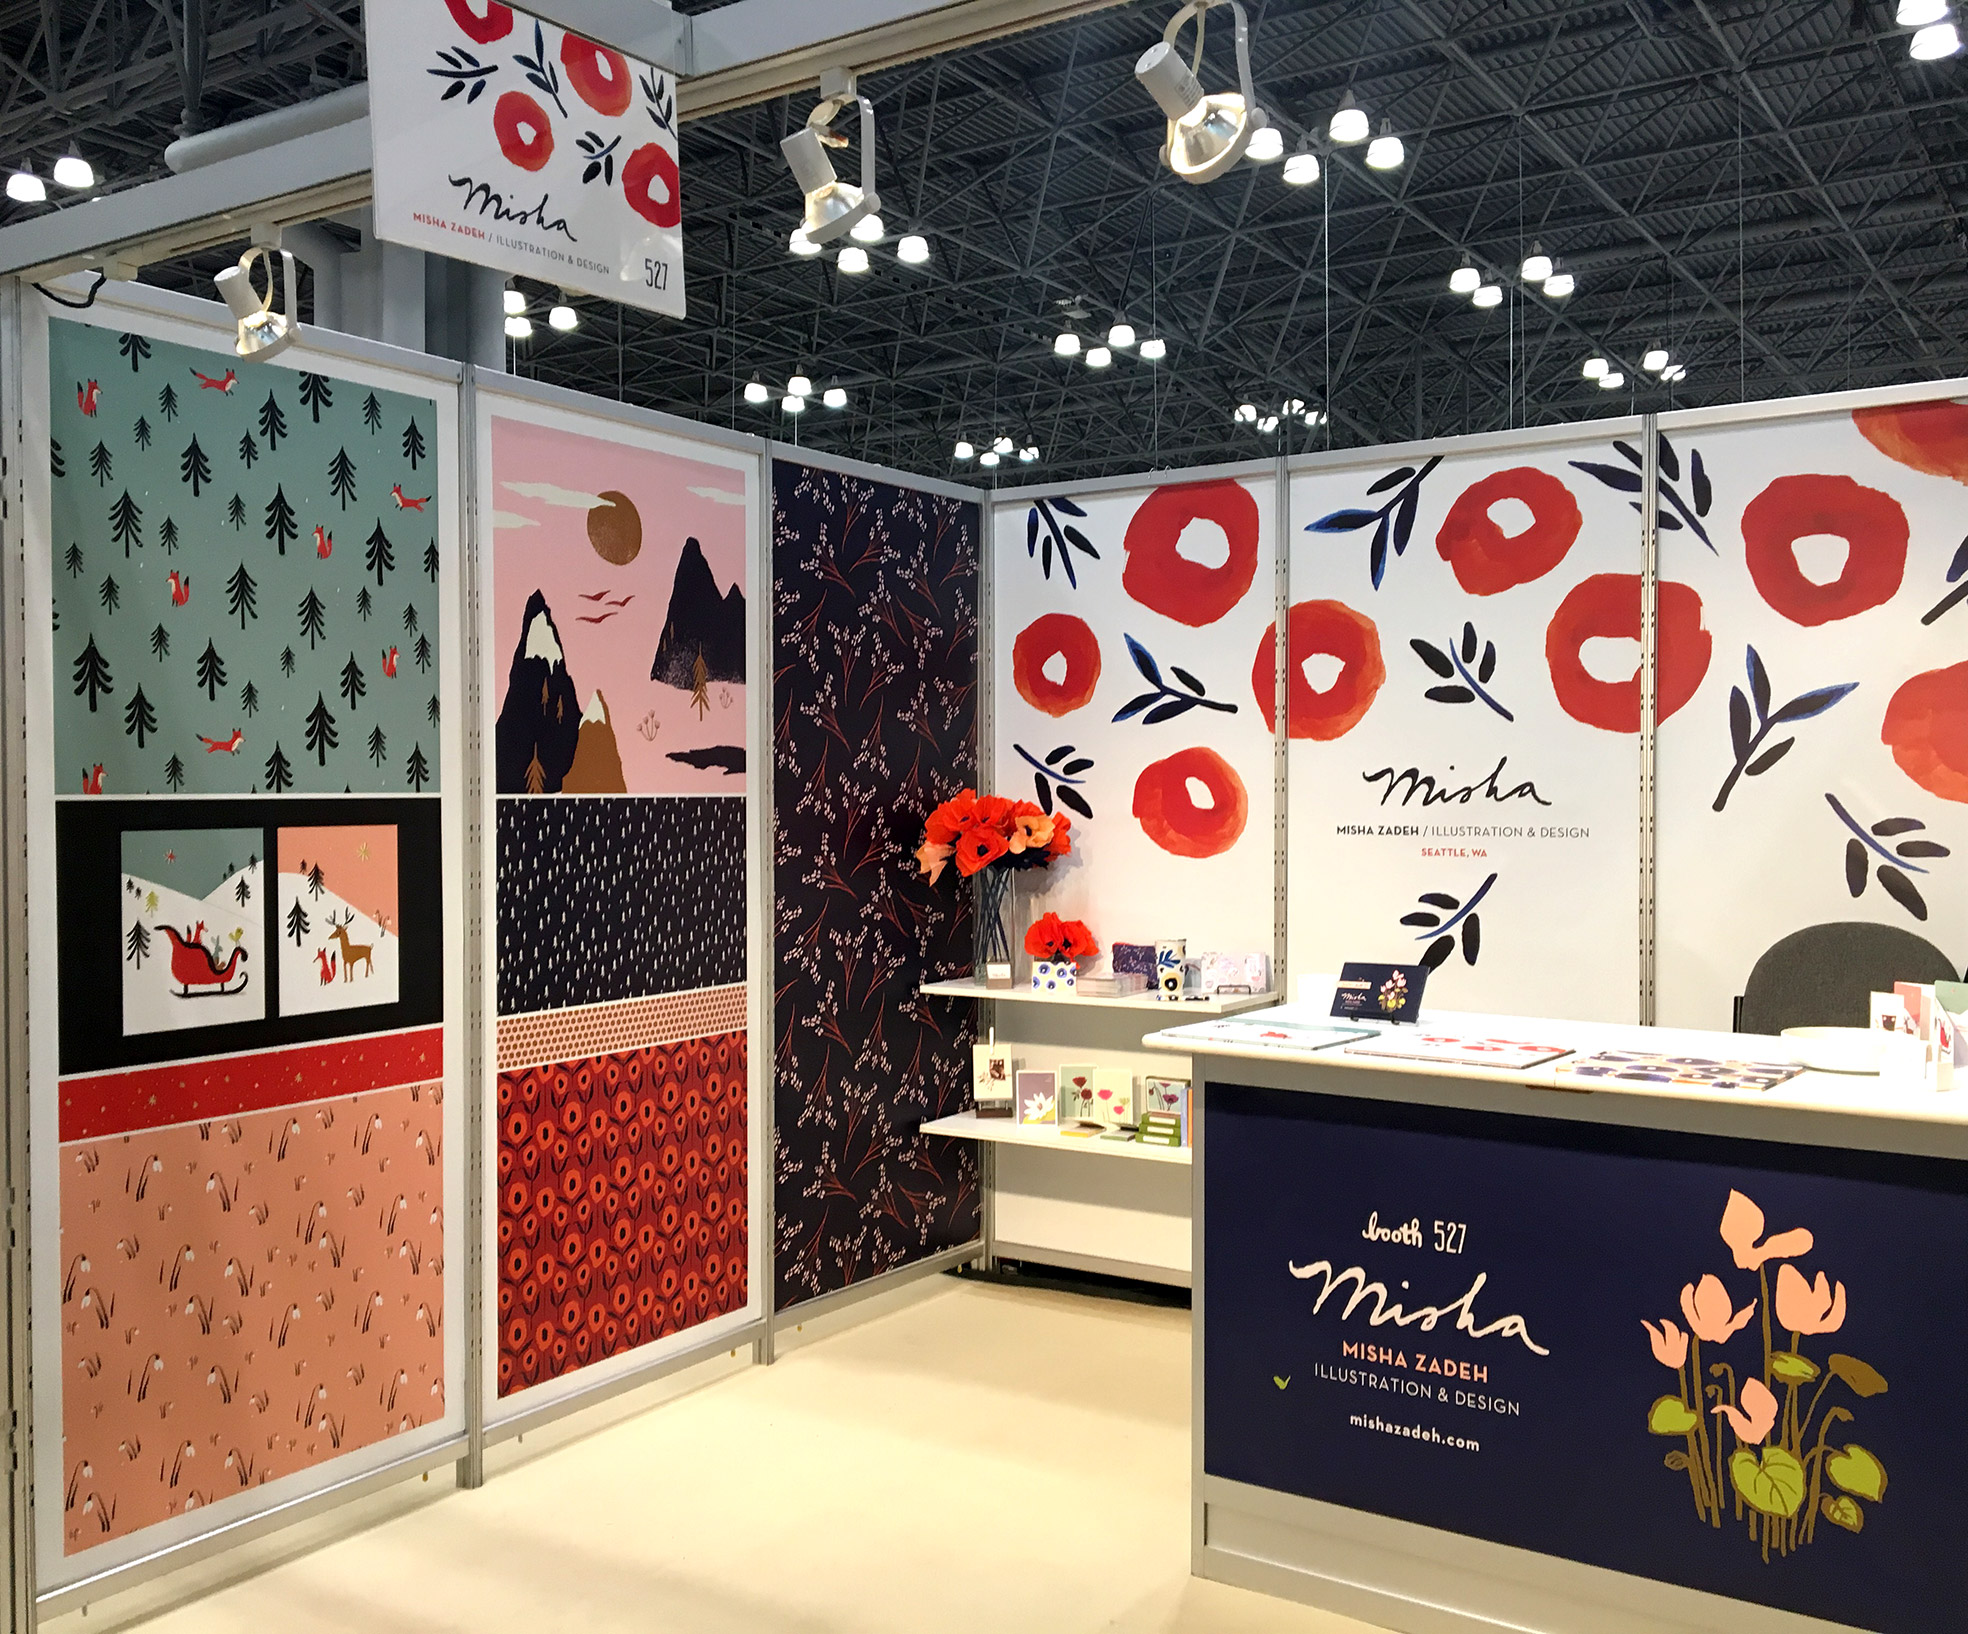 Misha Zadeh: SURTEX 2016: Booth 527, Left Side